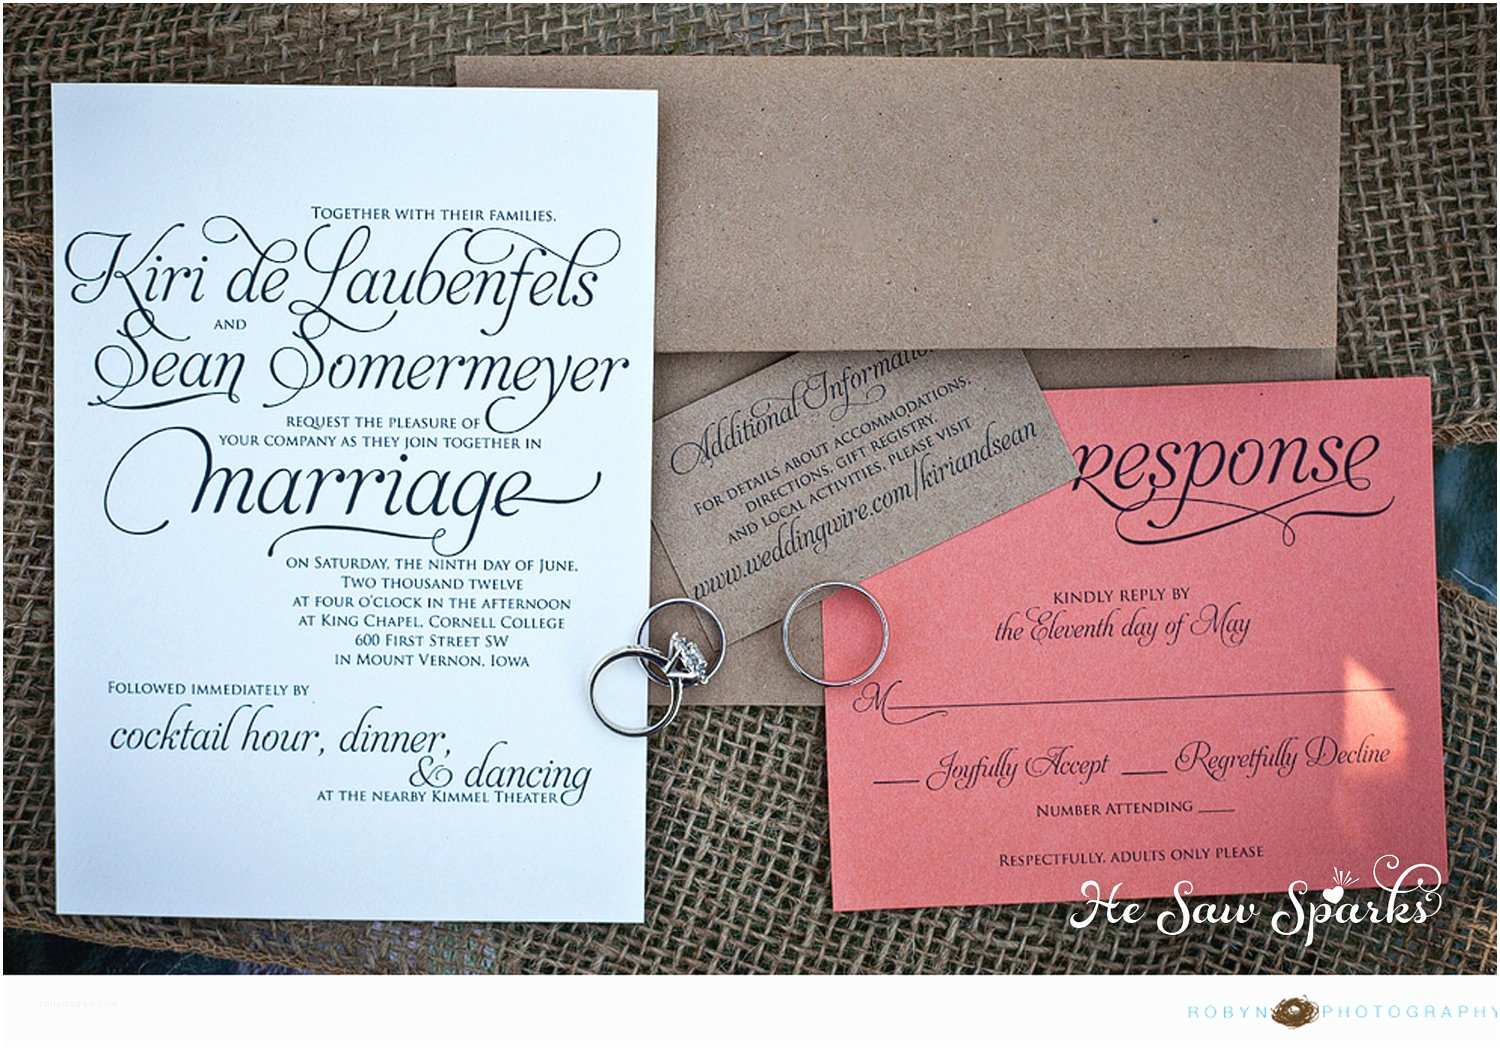 How to Package Wedding Invitations Lovely Script Wedding Invitation Package Printable Diy